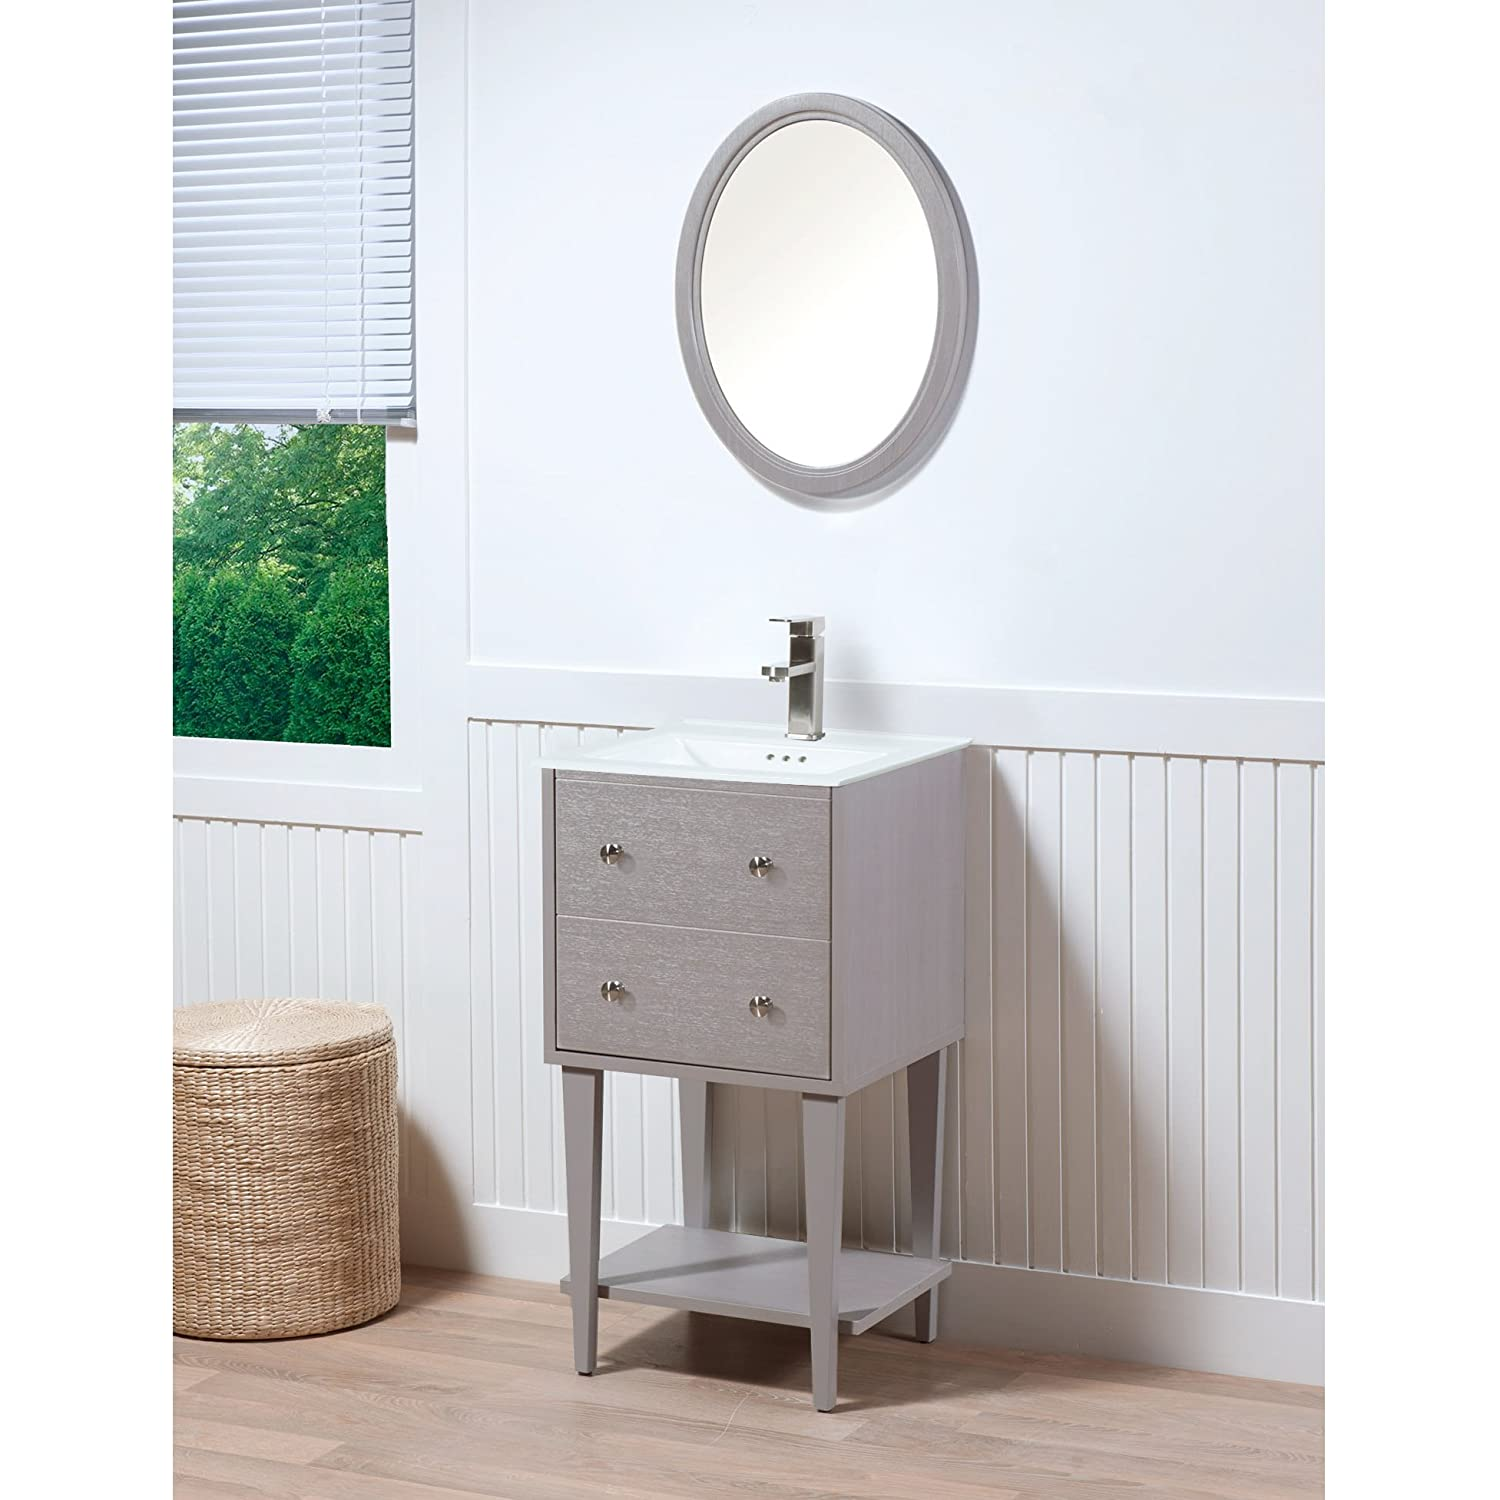 MAYKKE Fawn 19 Inch Bathroom Vanity Set in Birch Wood Drift Grey Finish  Single Gray. MAYKKE Wren 19 Inch Bathroom Vanity Set in Birch Wood White Finish